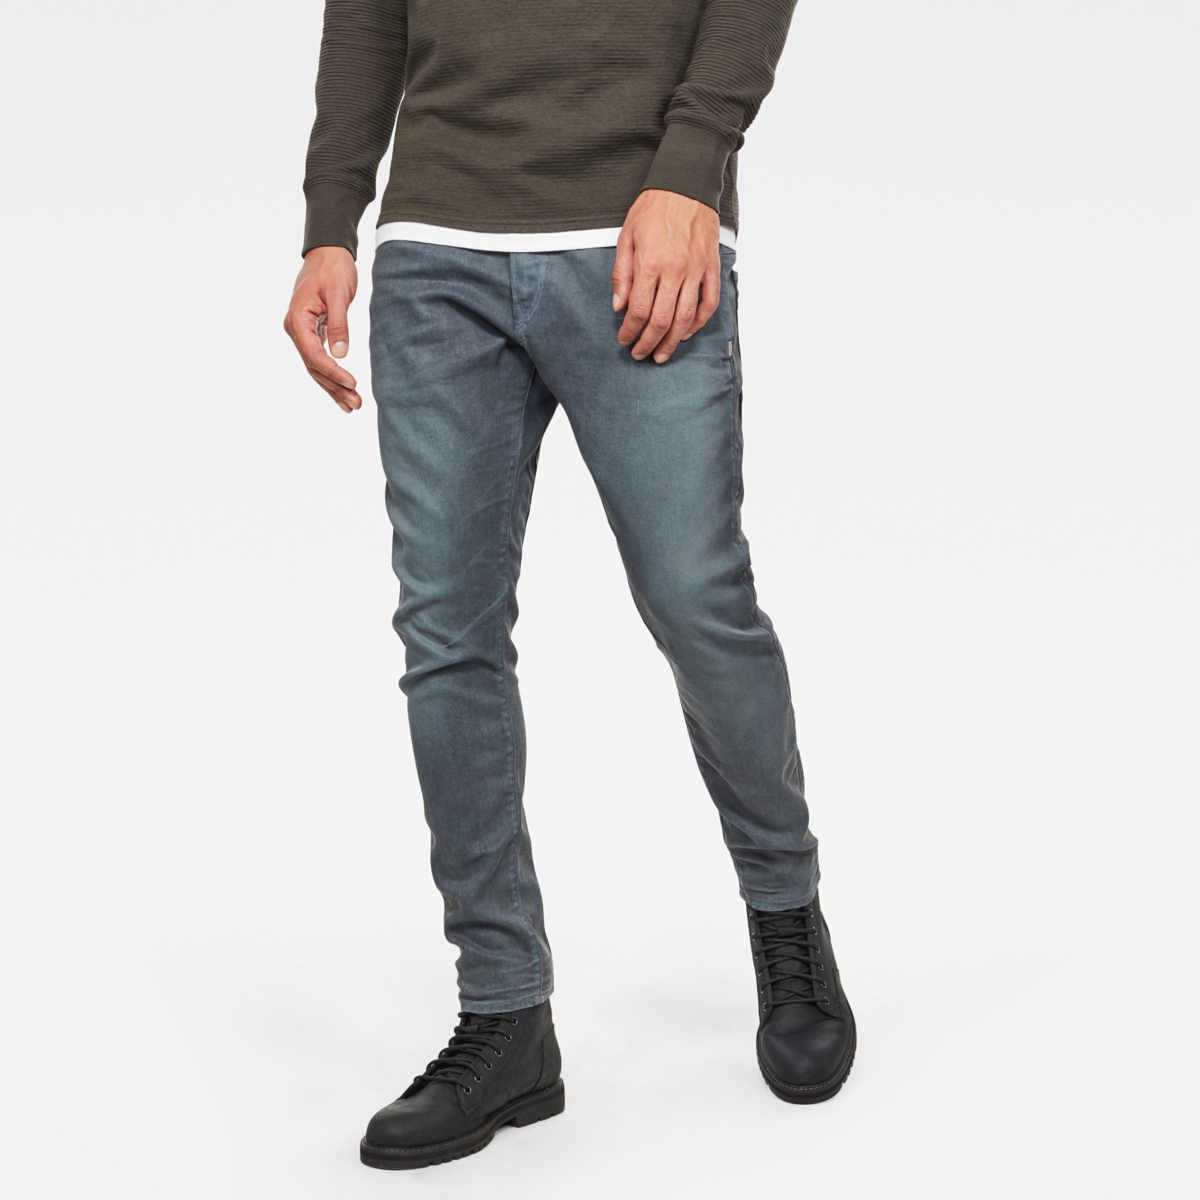 G-Star Jeans D-Staq 3D Skinny Jeans Grey Male Canada - GOOFASH - Mens JEANS